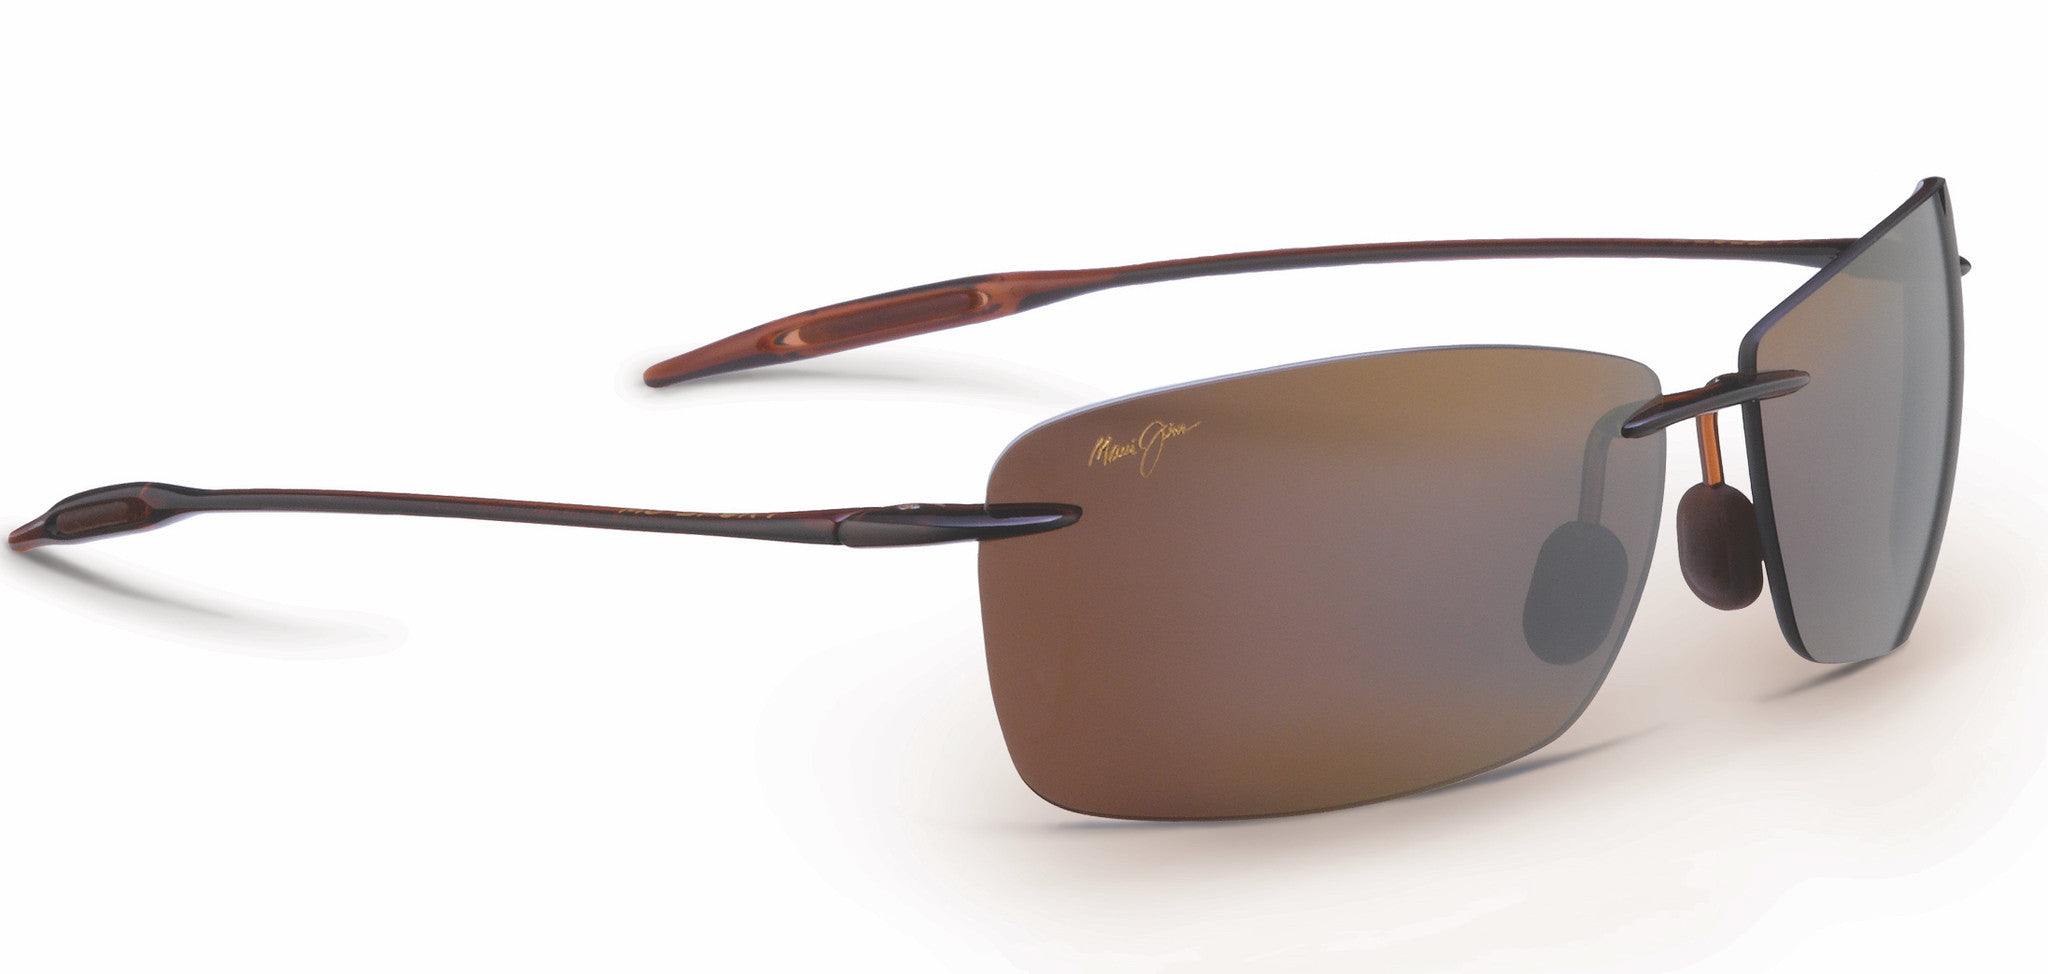 f11e3ffd2691 Maui Jim Lighthouse H423-26 Rooter with Polarized HCL Bronze Lenses -  Flight Sunglasses